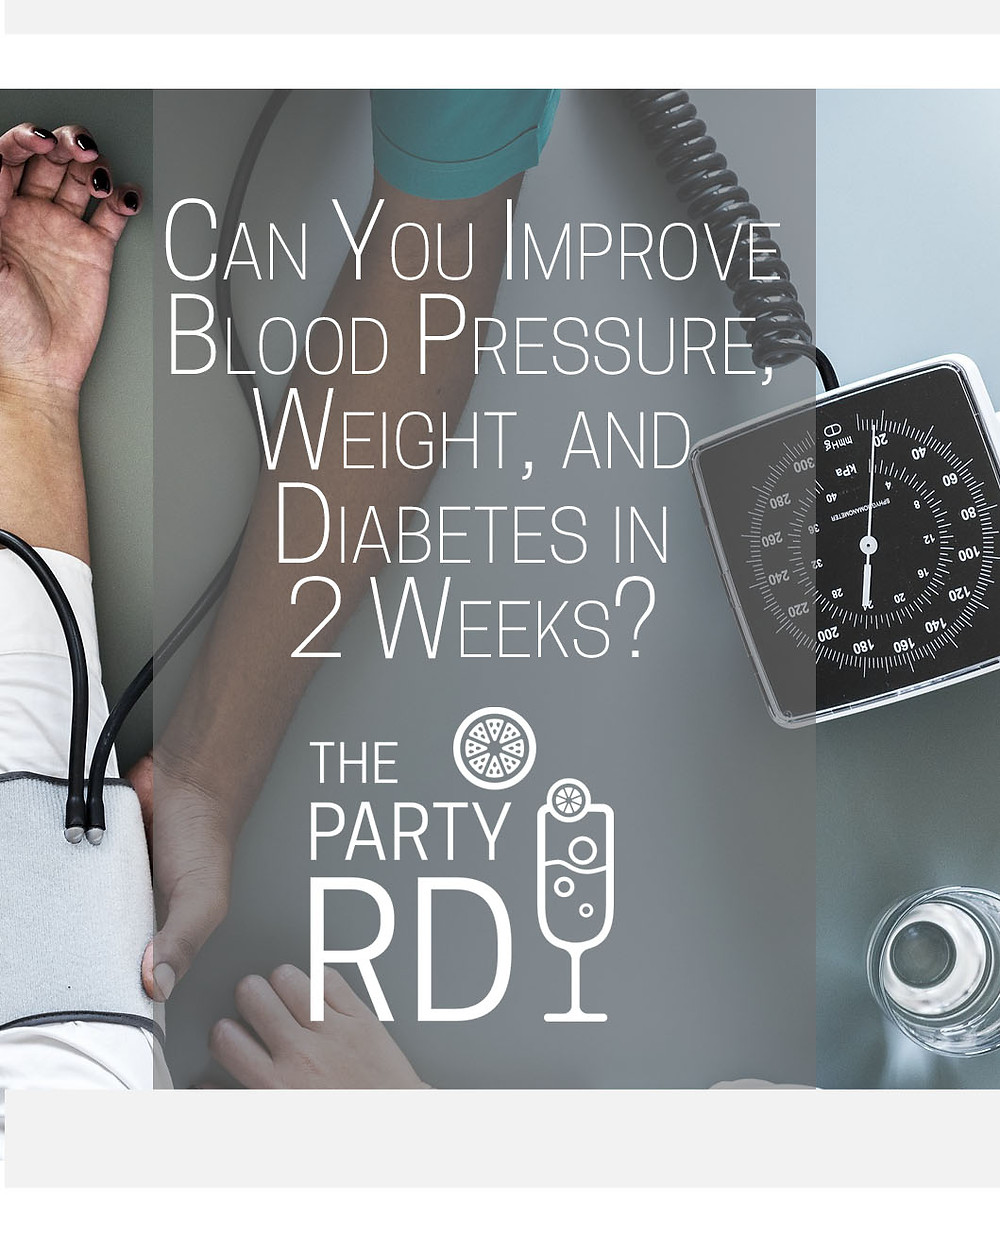 Can you Improve Blood Pressure, Weight and Diabetes in 2 Weeks?